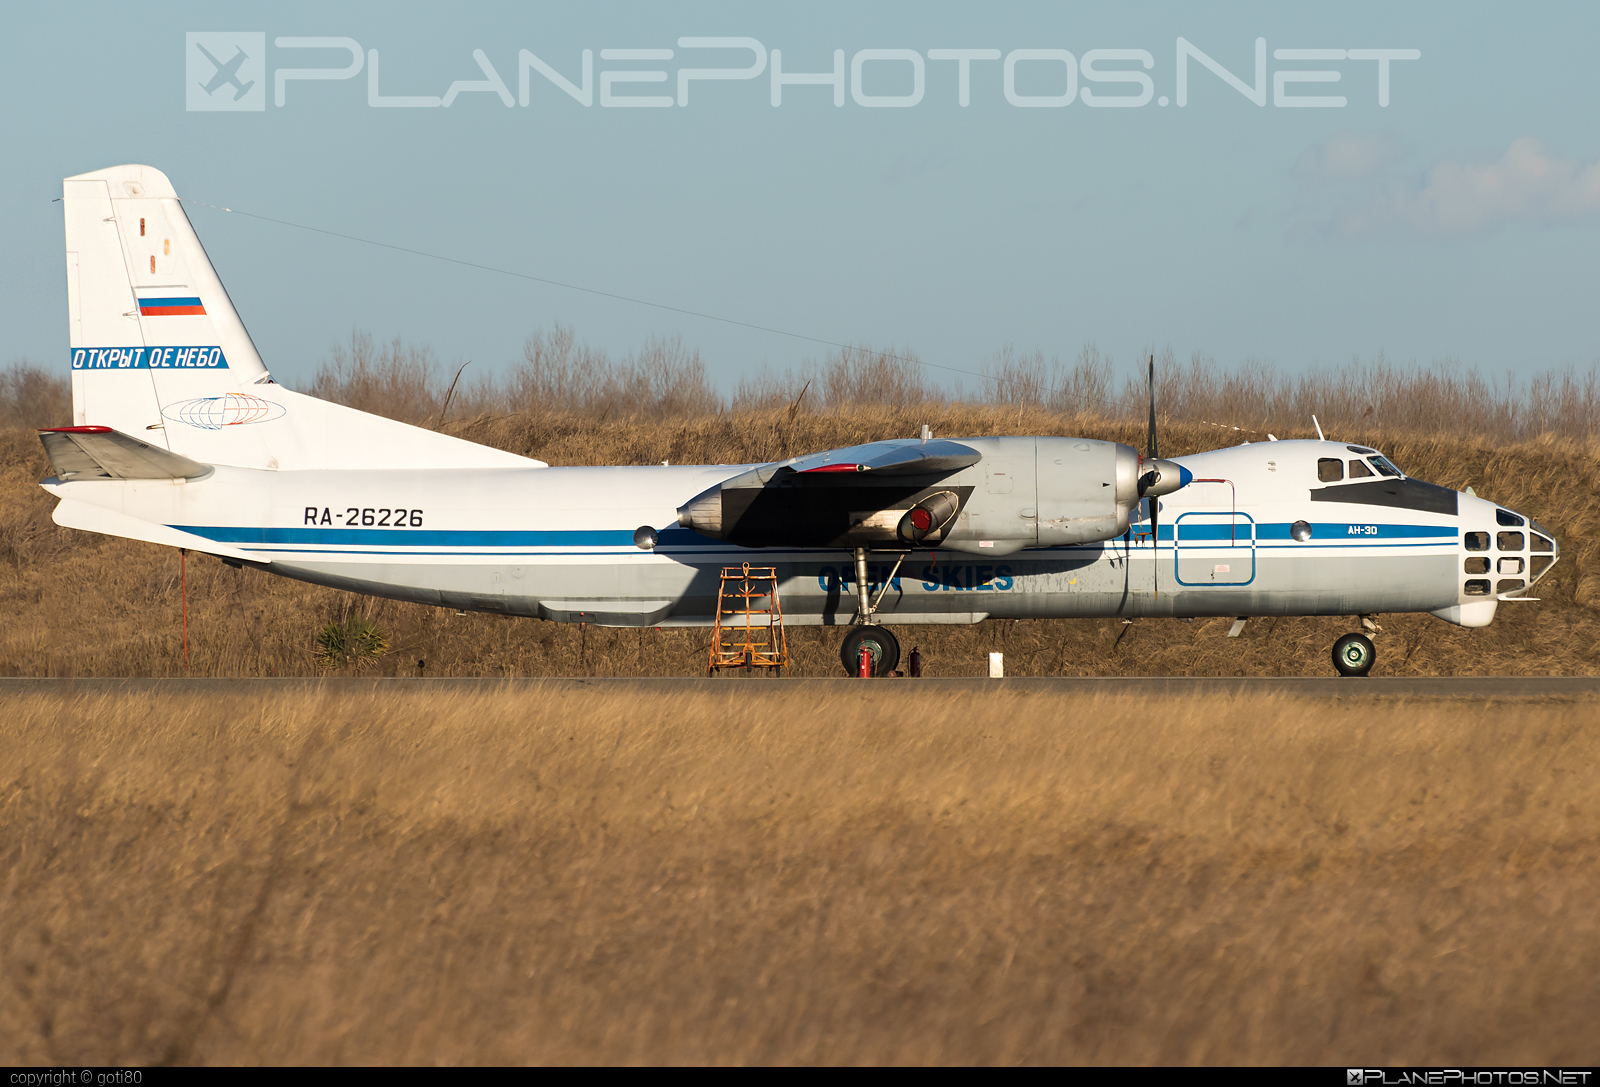 Antonov An-30 - RA-26226 operated by Voyenno-vozdushnye sily Rossii (Russian Air Force) #an30 #antonov #antonov30